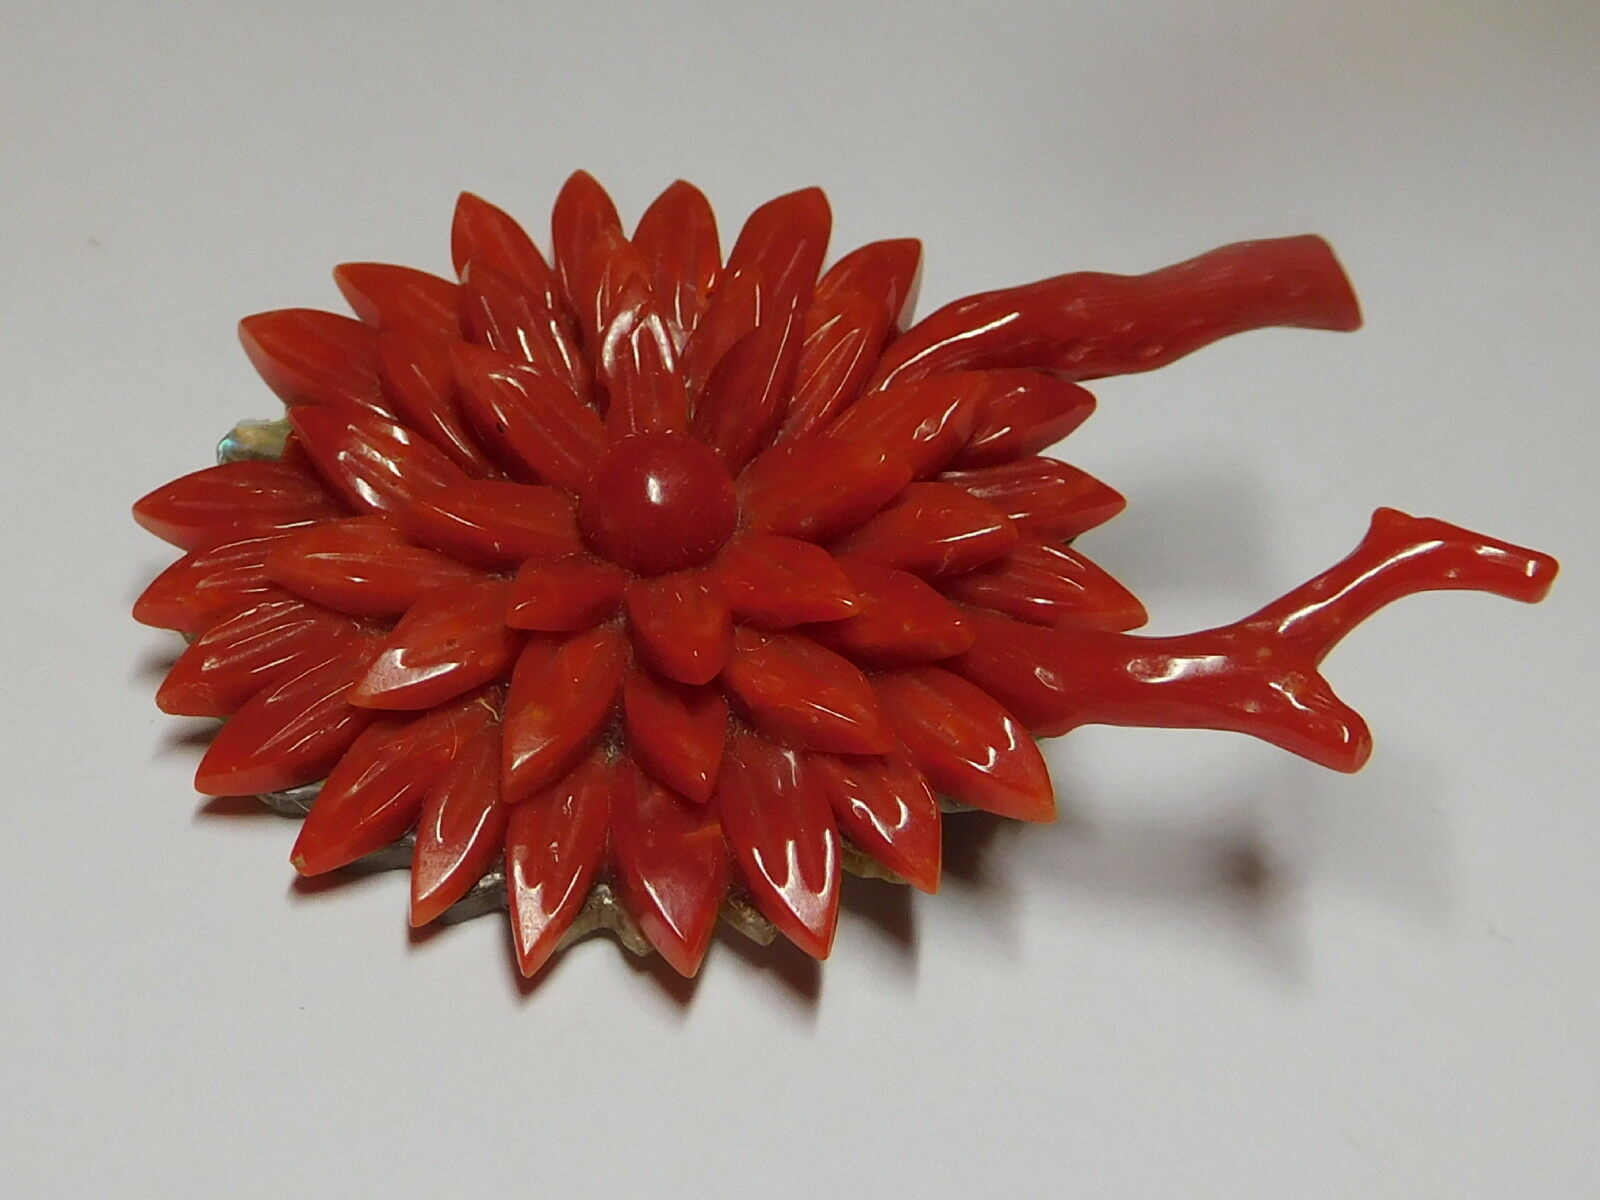 Antique Hand Carved Natural Un-dyed Red Mother of Pearl Coral Brooch Pin